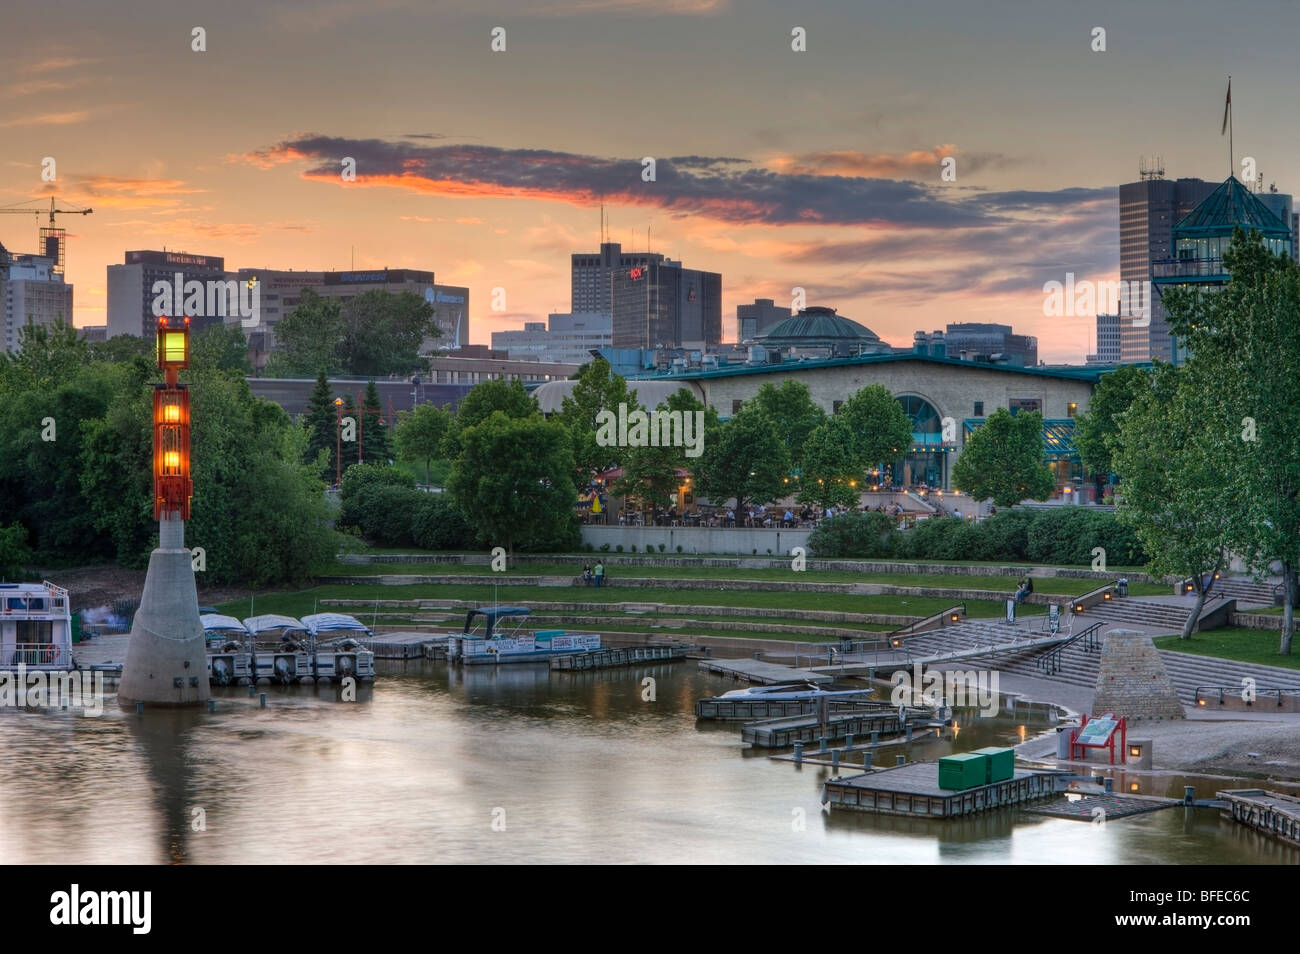 Dusk over The Forks Market, Tower and Marina, a National Historic Site, in the city of Winnipeg, Manitoba, Canada - Stock Image